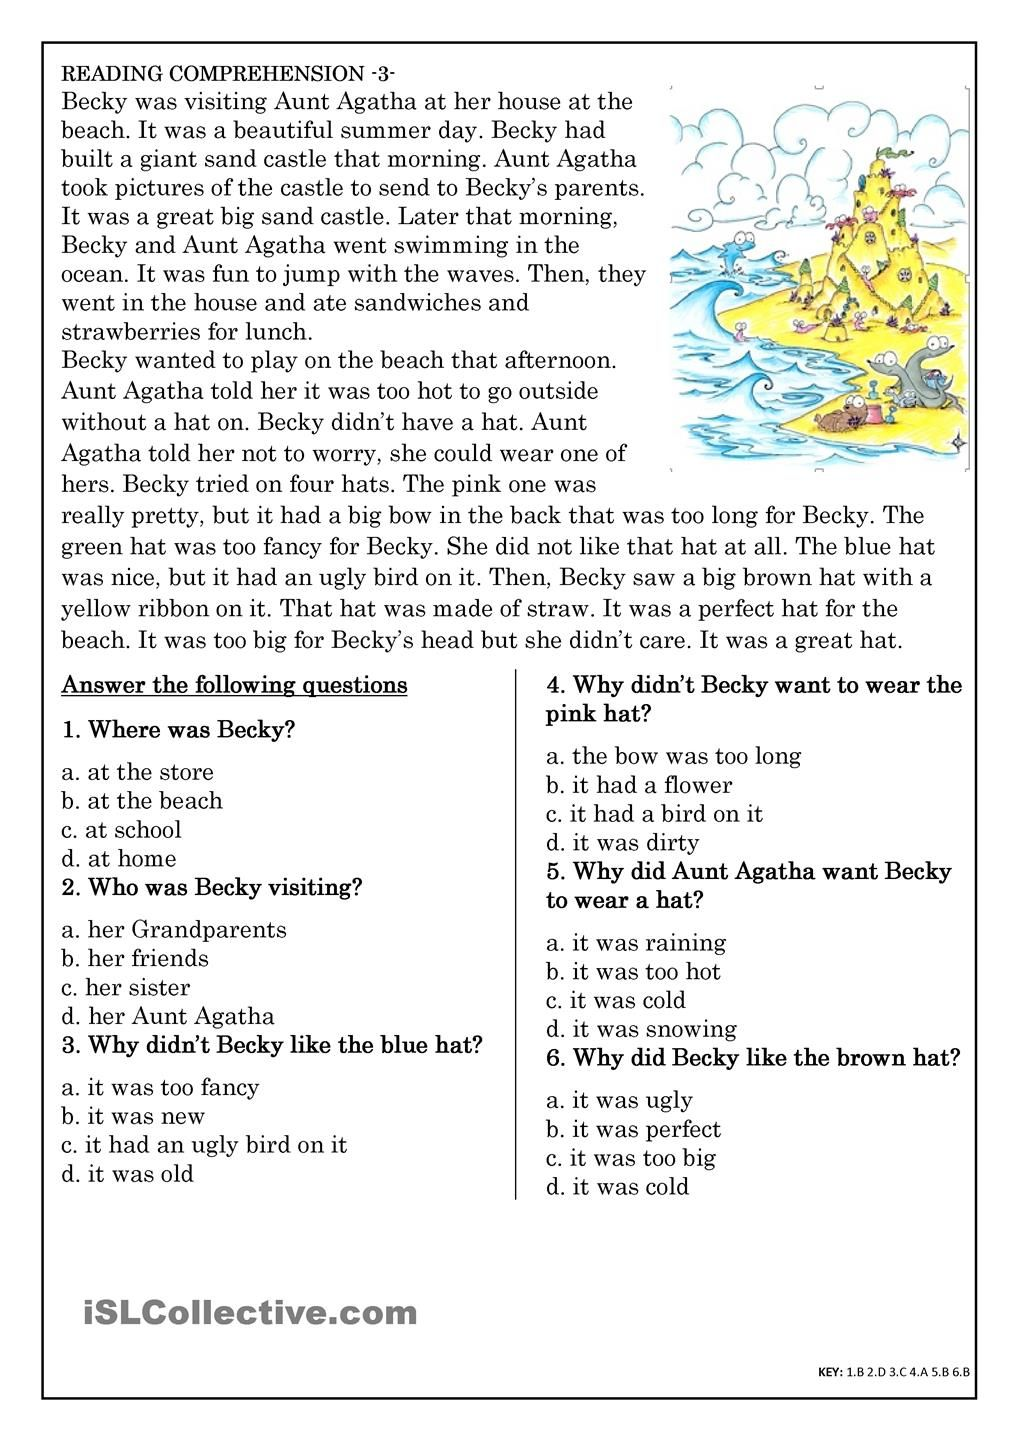 Worksheet Reading Comprehension Sheets comprehension esl worksheets scalien reading scalien